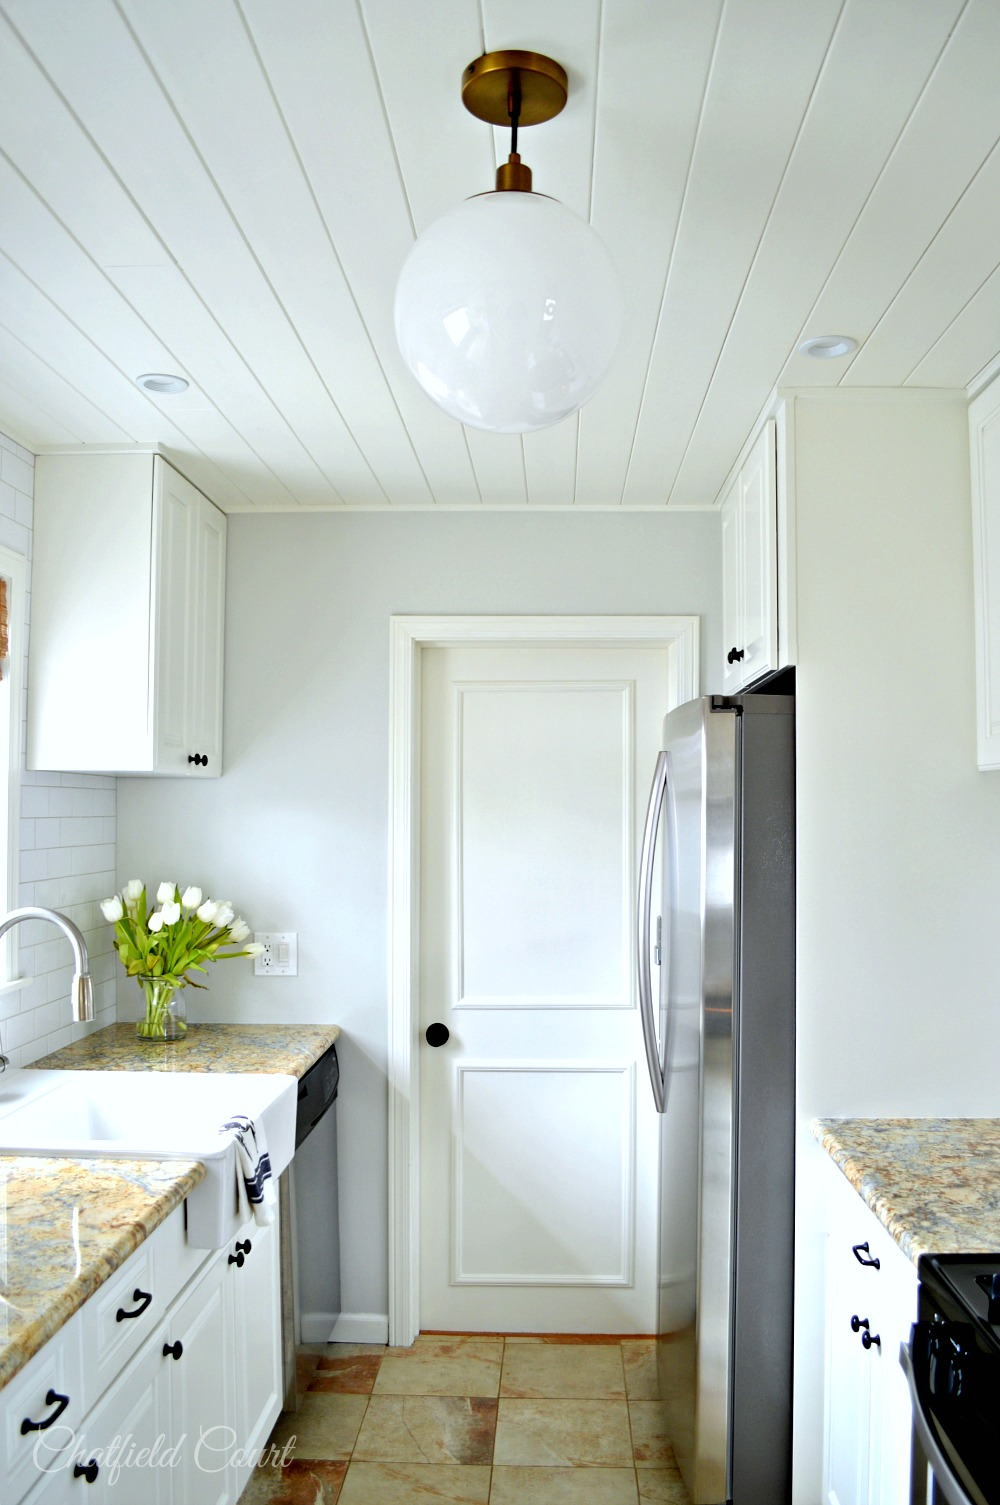 Complete Kitchen Makeover, Plank Ceiling DIY, By Chatfield Court Featured  On @Remodelaholic